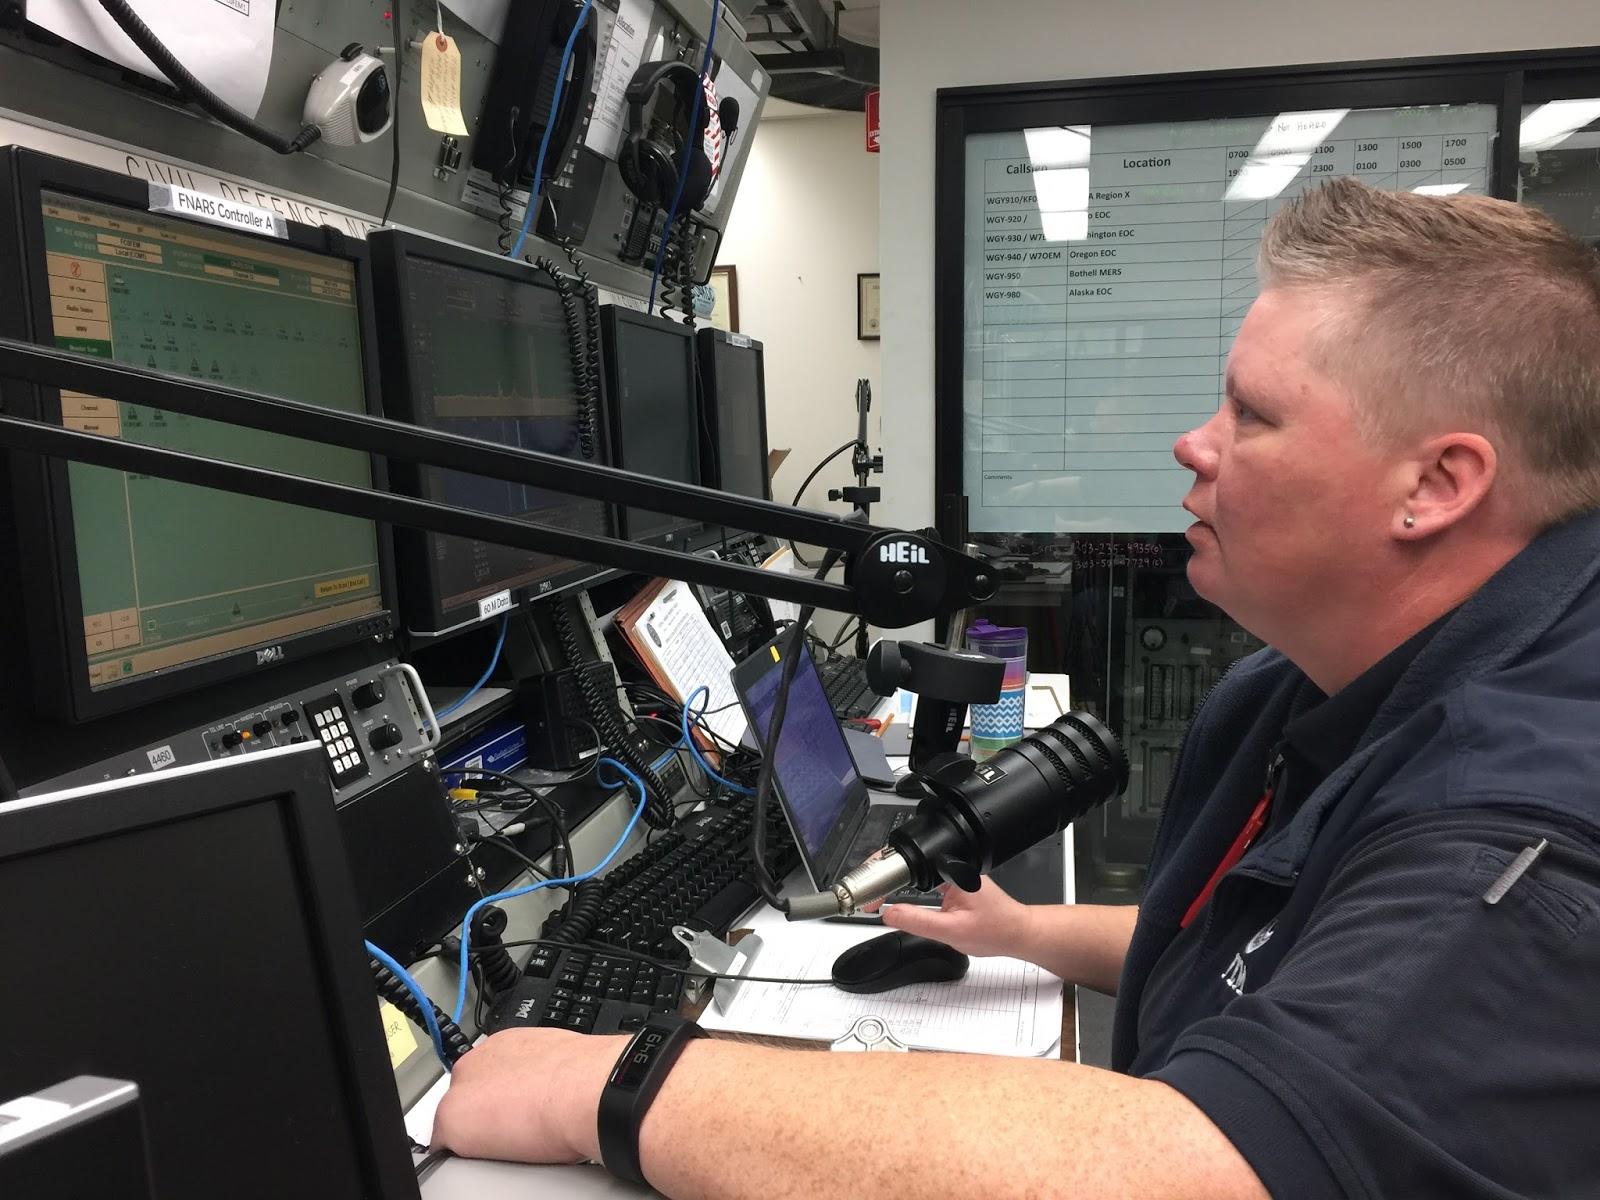 FEMA Region X Reports Another Successful HF Interoperability Exercise